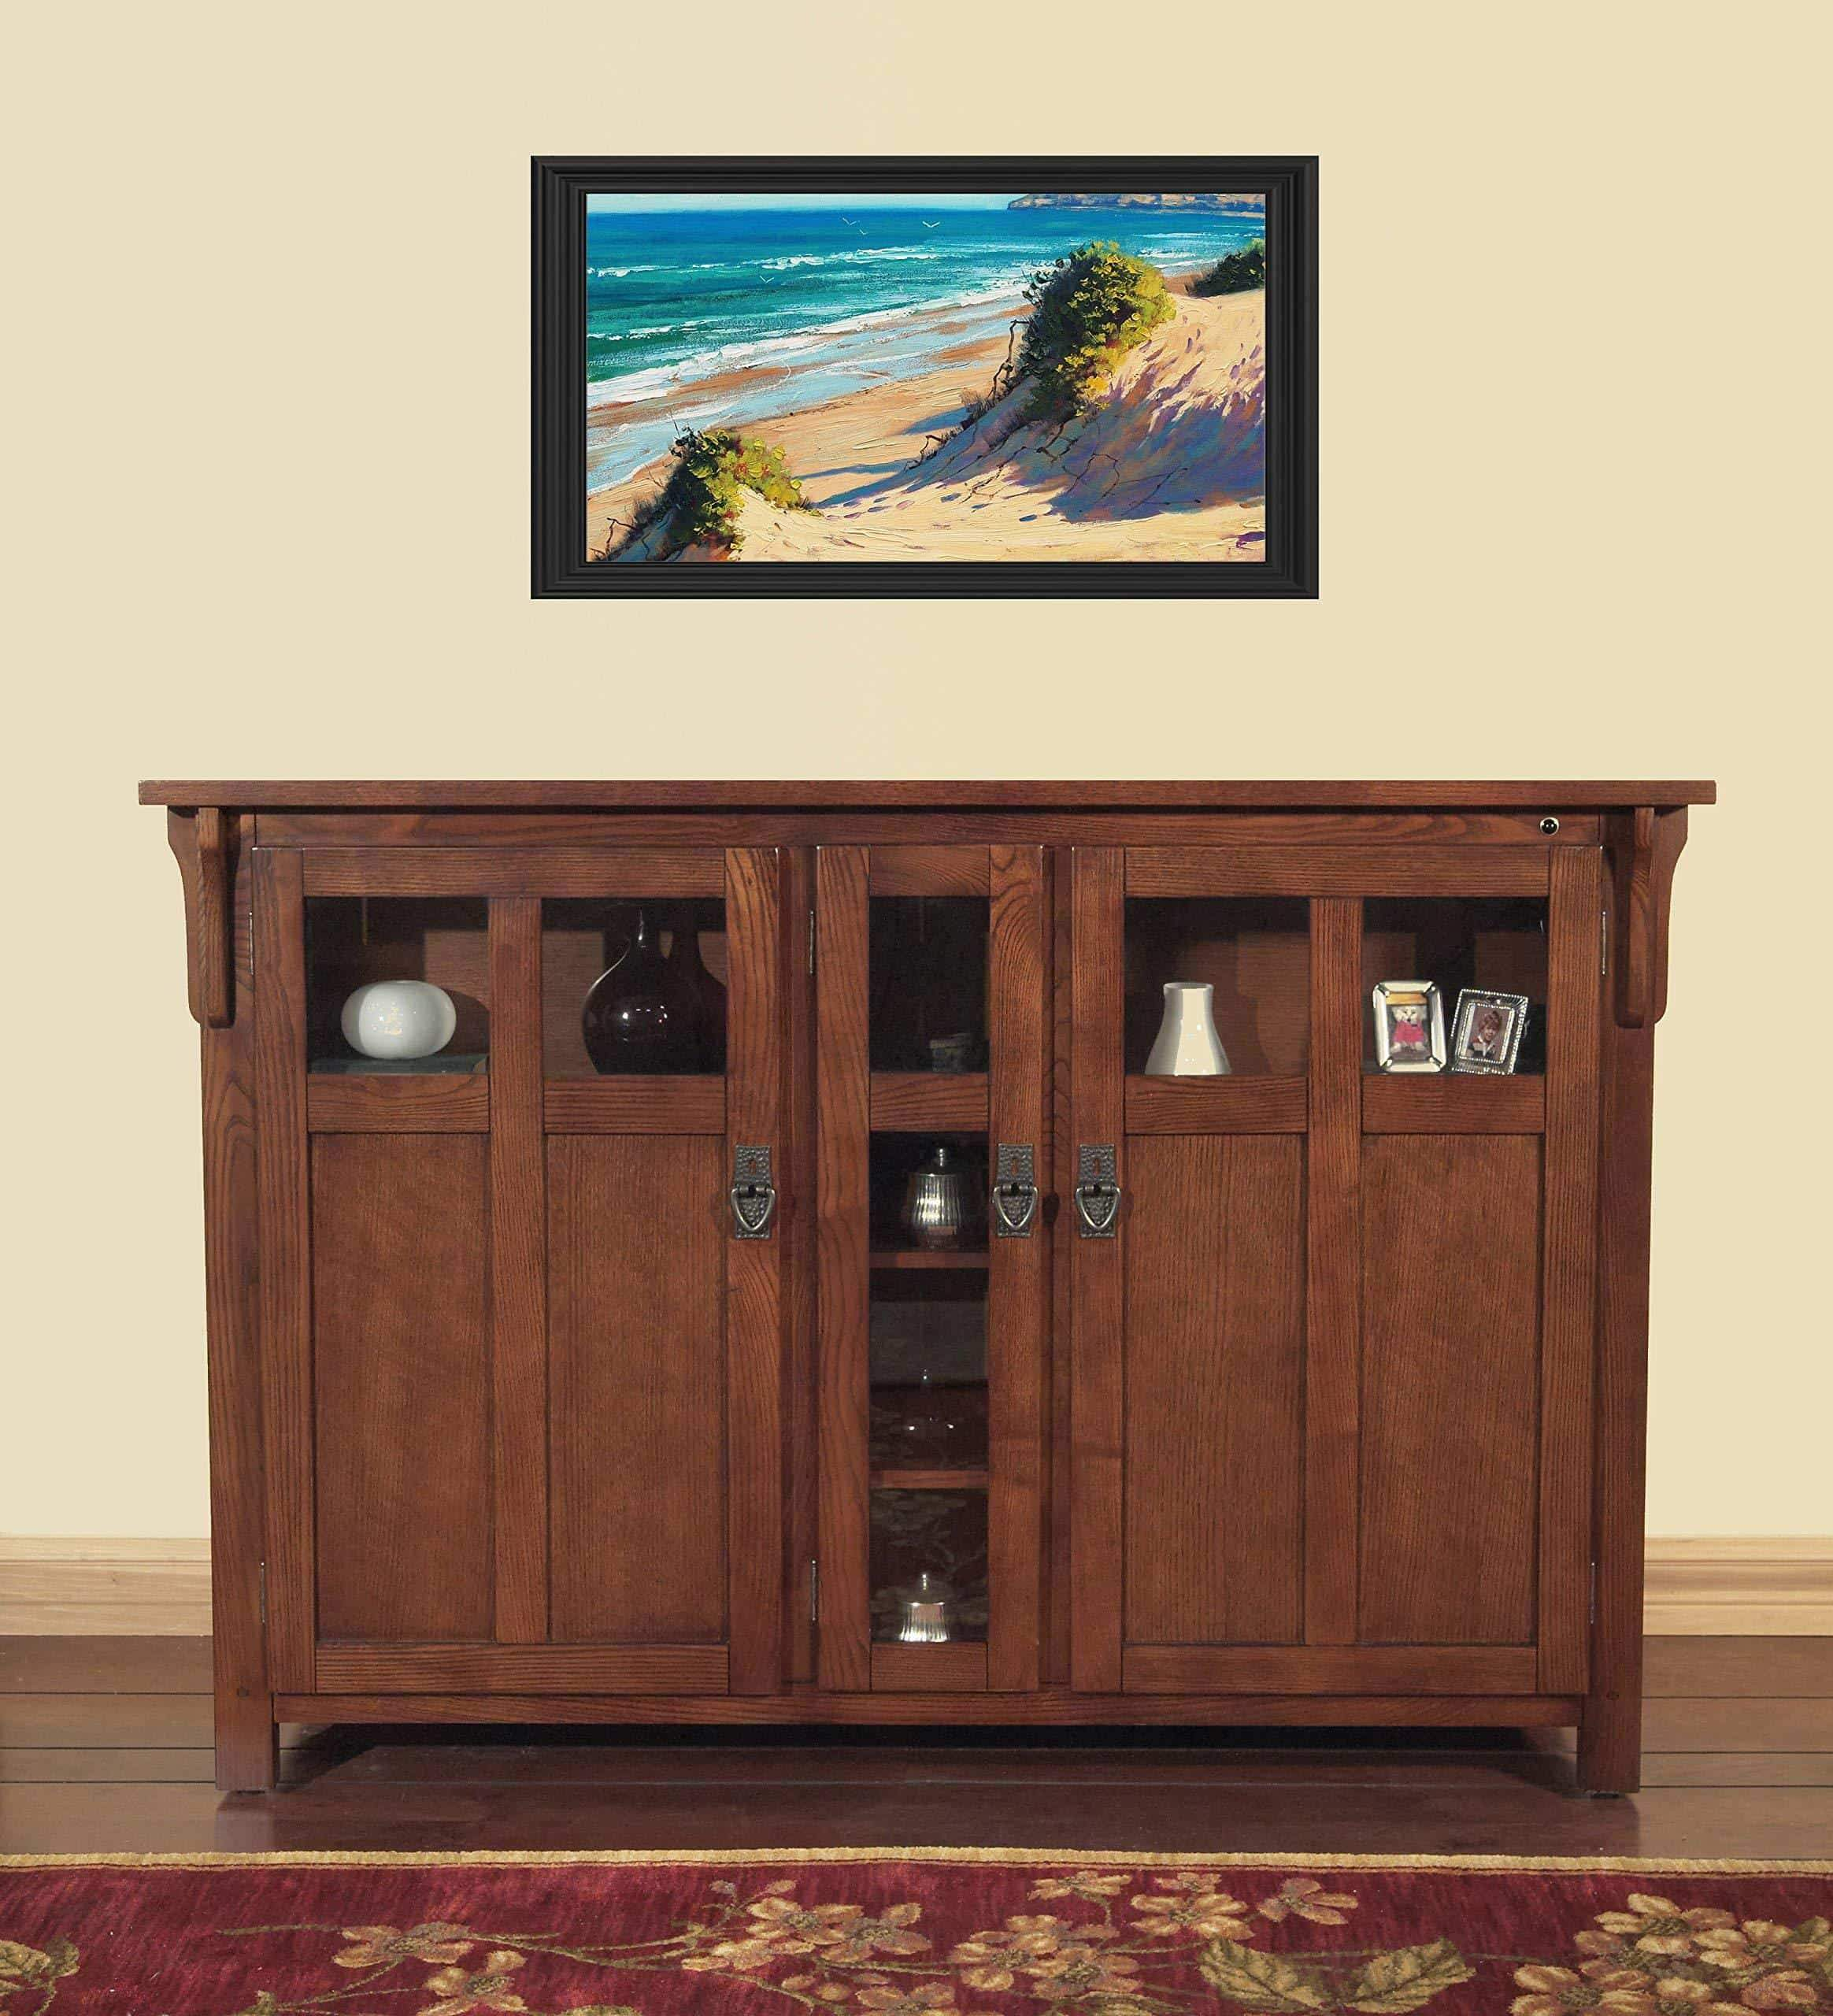 Featured touchstone 70062 bungalow tv lift cabinet chestnut oak up to 60 inch tvs diagonal 55 in wide mission style motorized tv cabinet pop up tv cabinet with memory feature ir rf 12v trigger